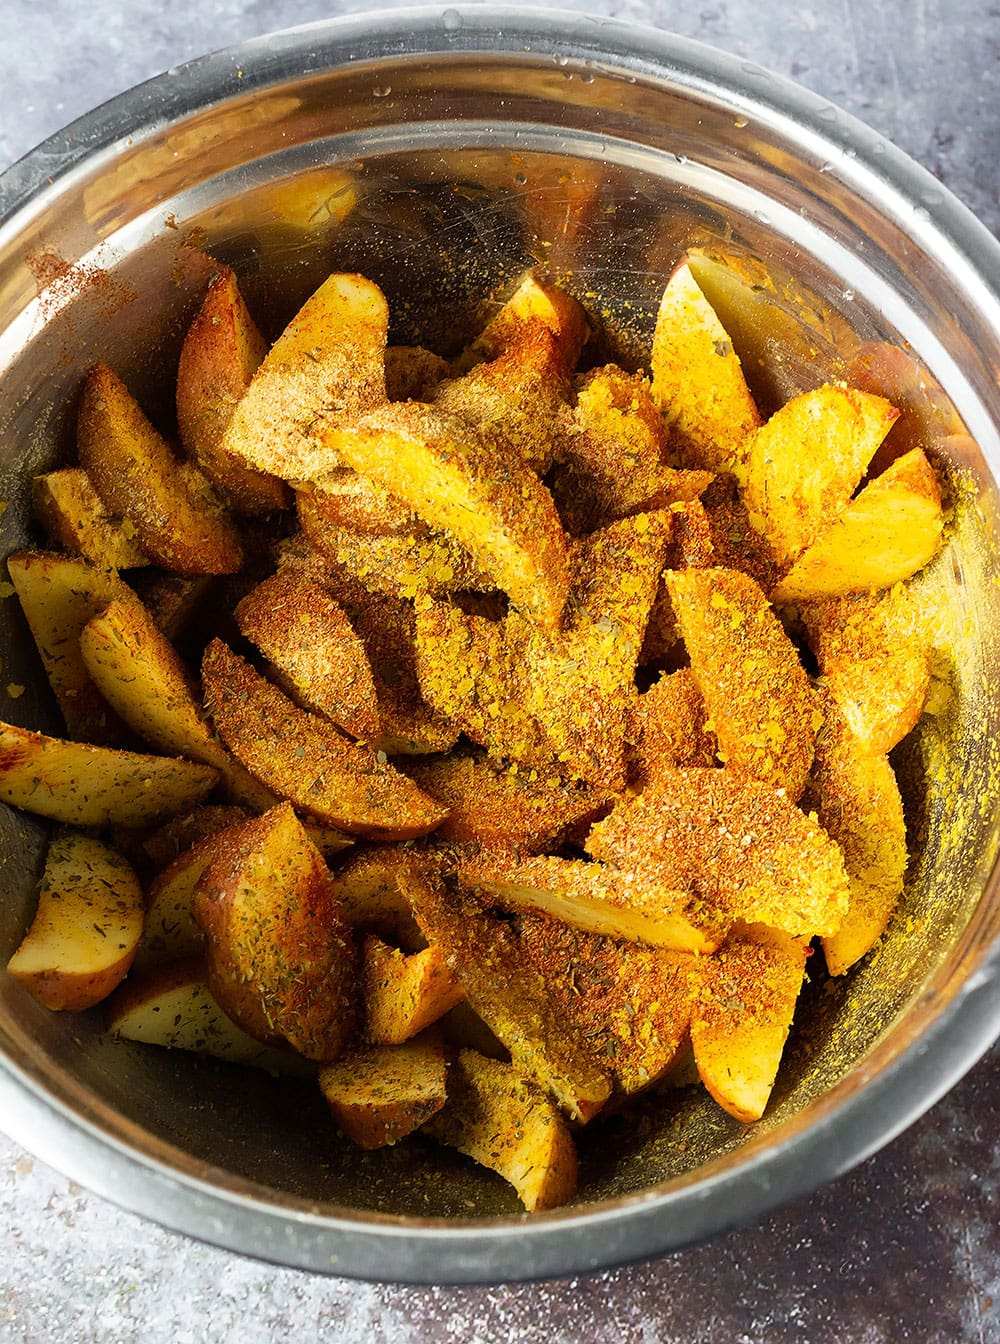 Cajun oven baked potato wedges with seasoning blend in a silver bowl